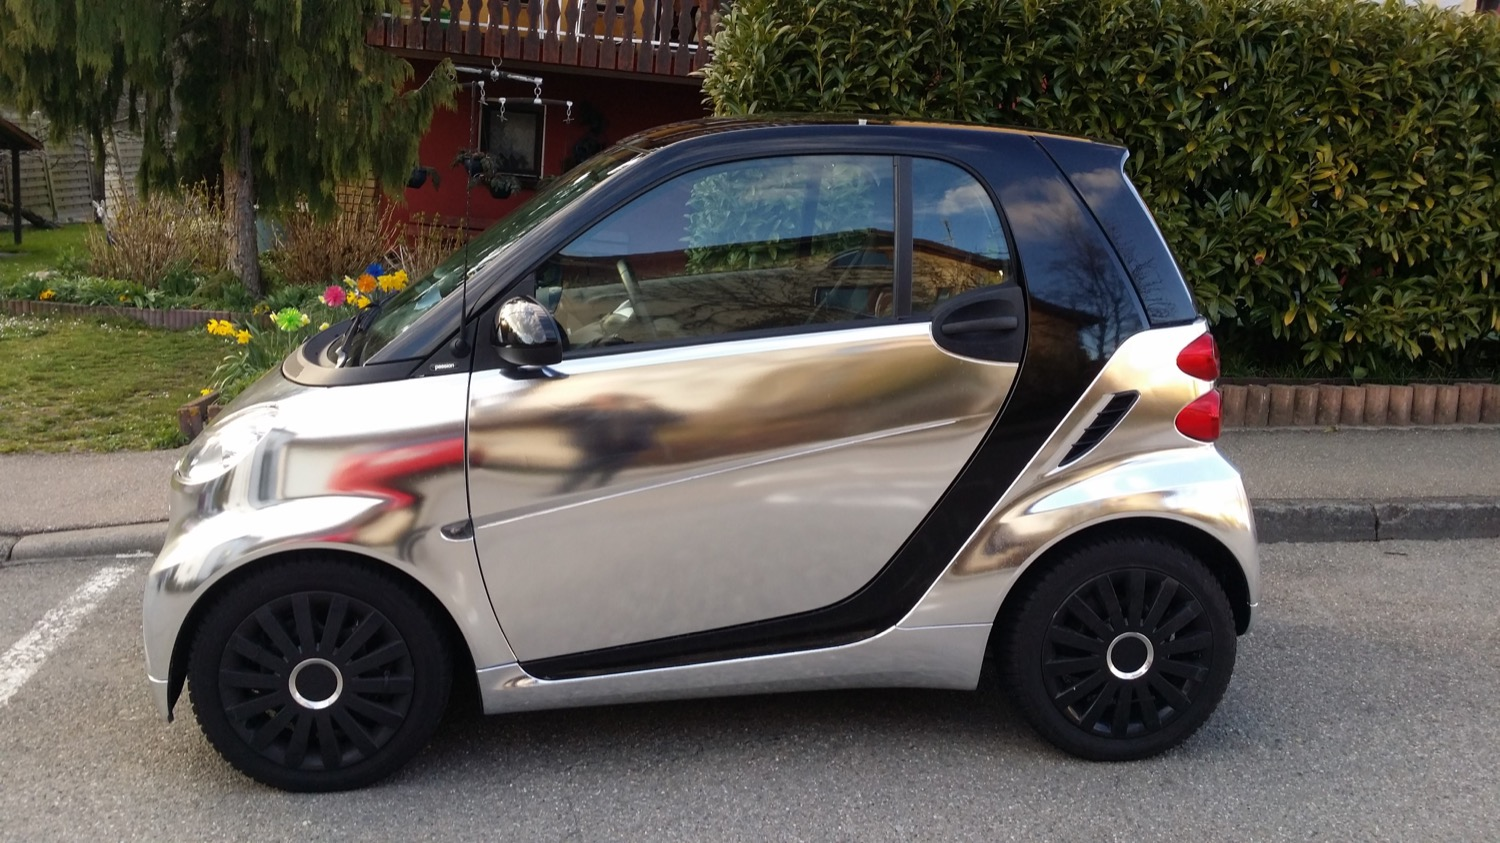 2015-04-04-car-wrapping-smart-3.jpg